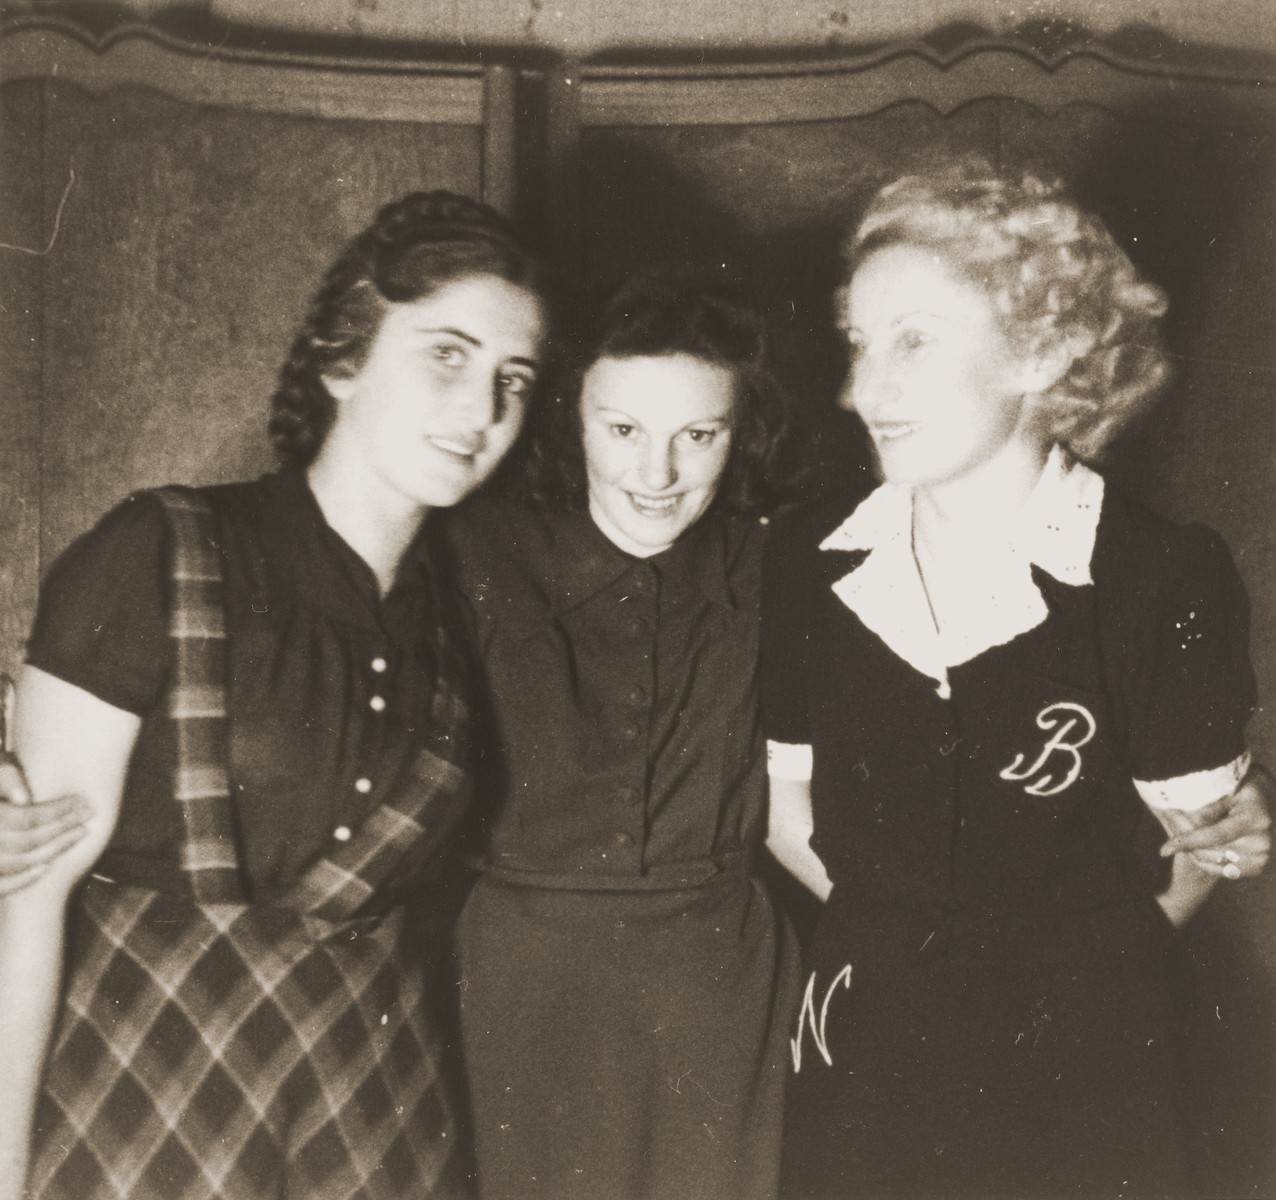 Three young women pose in the Cernauti ghetto.  Pictured from left to right are Erika Neuman, Celine Osterow and Beatrice Neuman.